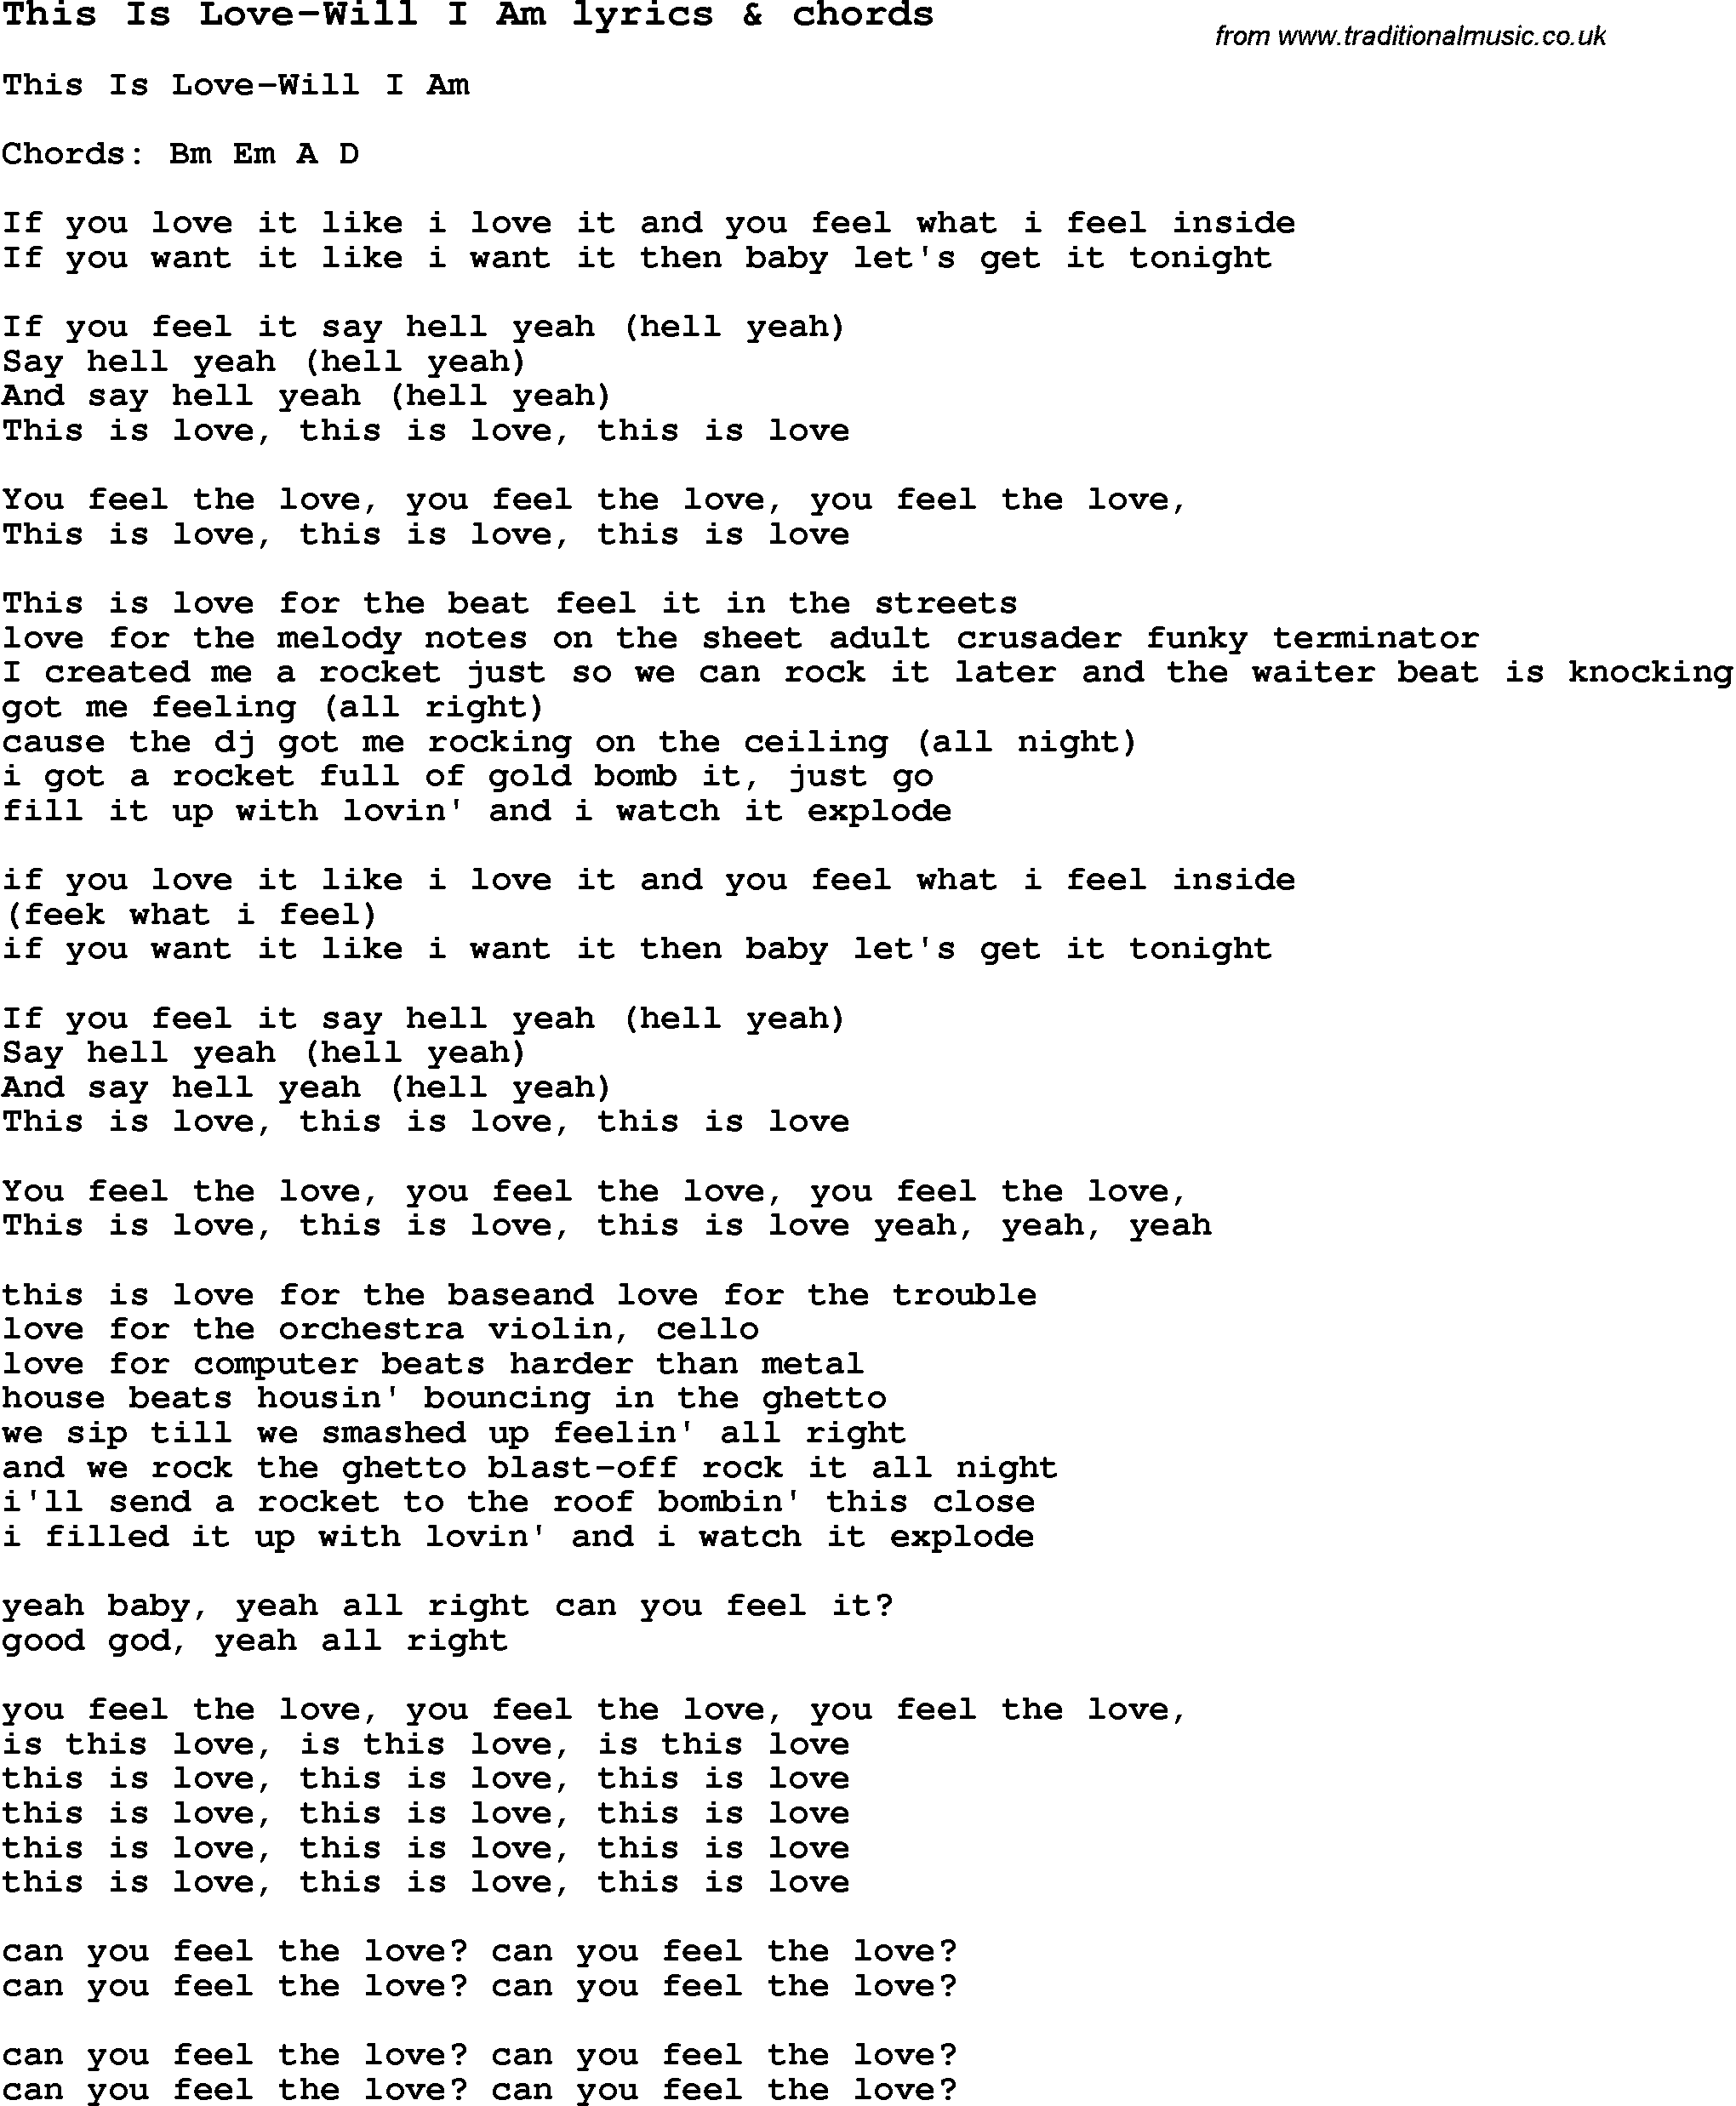 Love Song Lyrics for:This Is Love-Will I Am with chords.